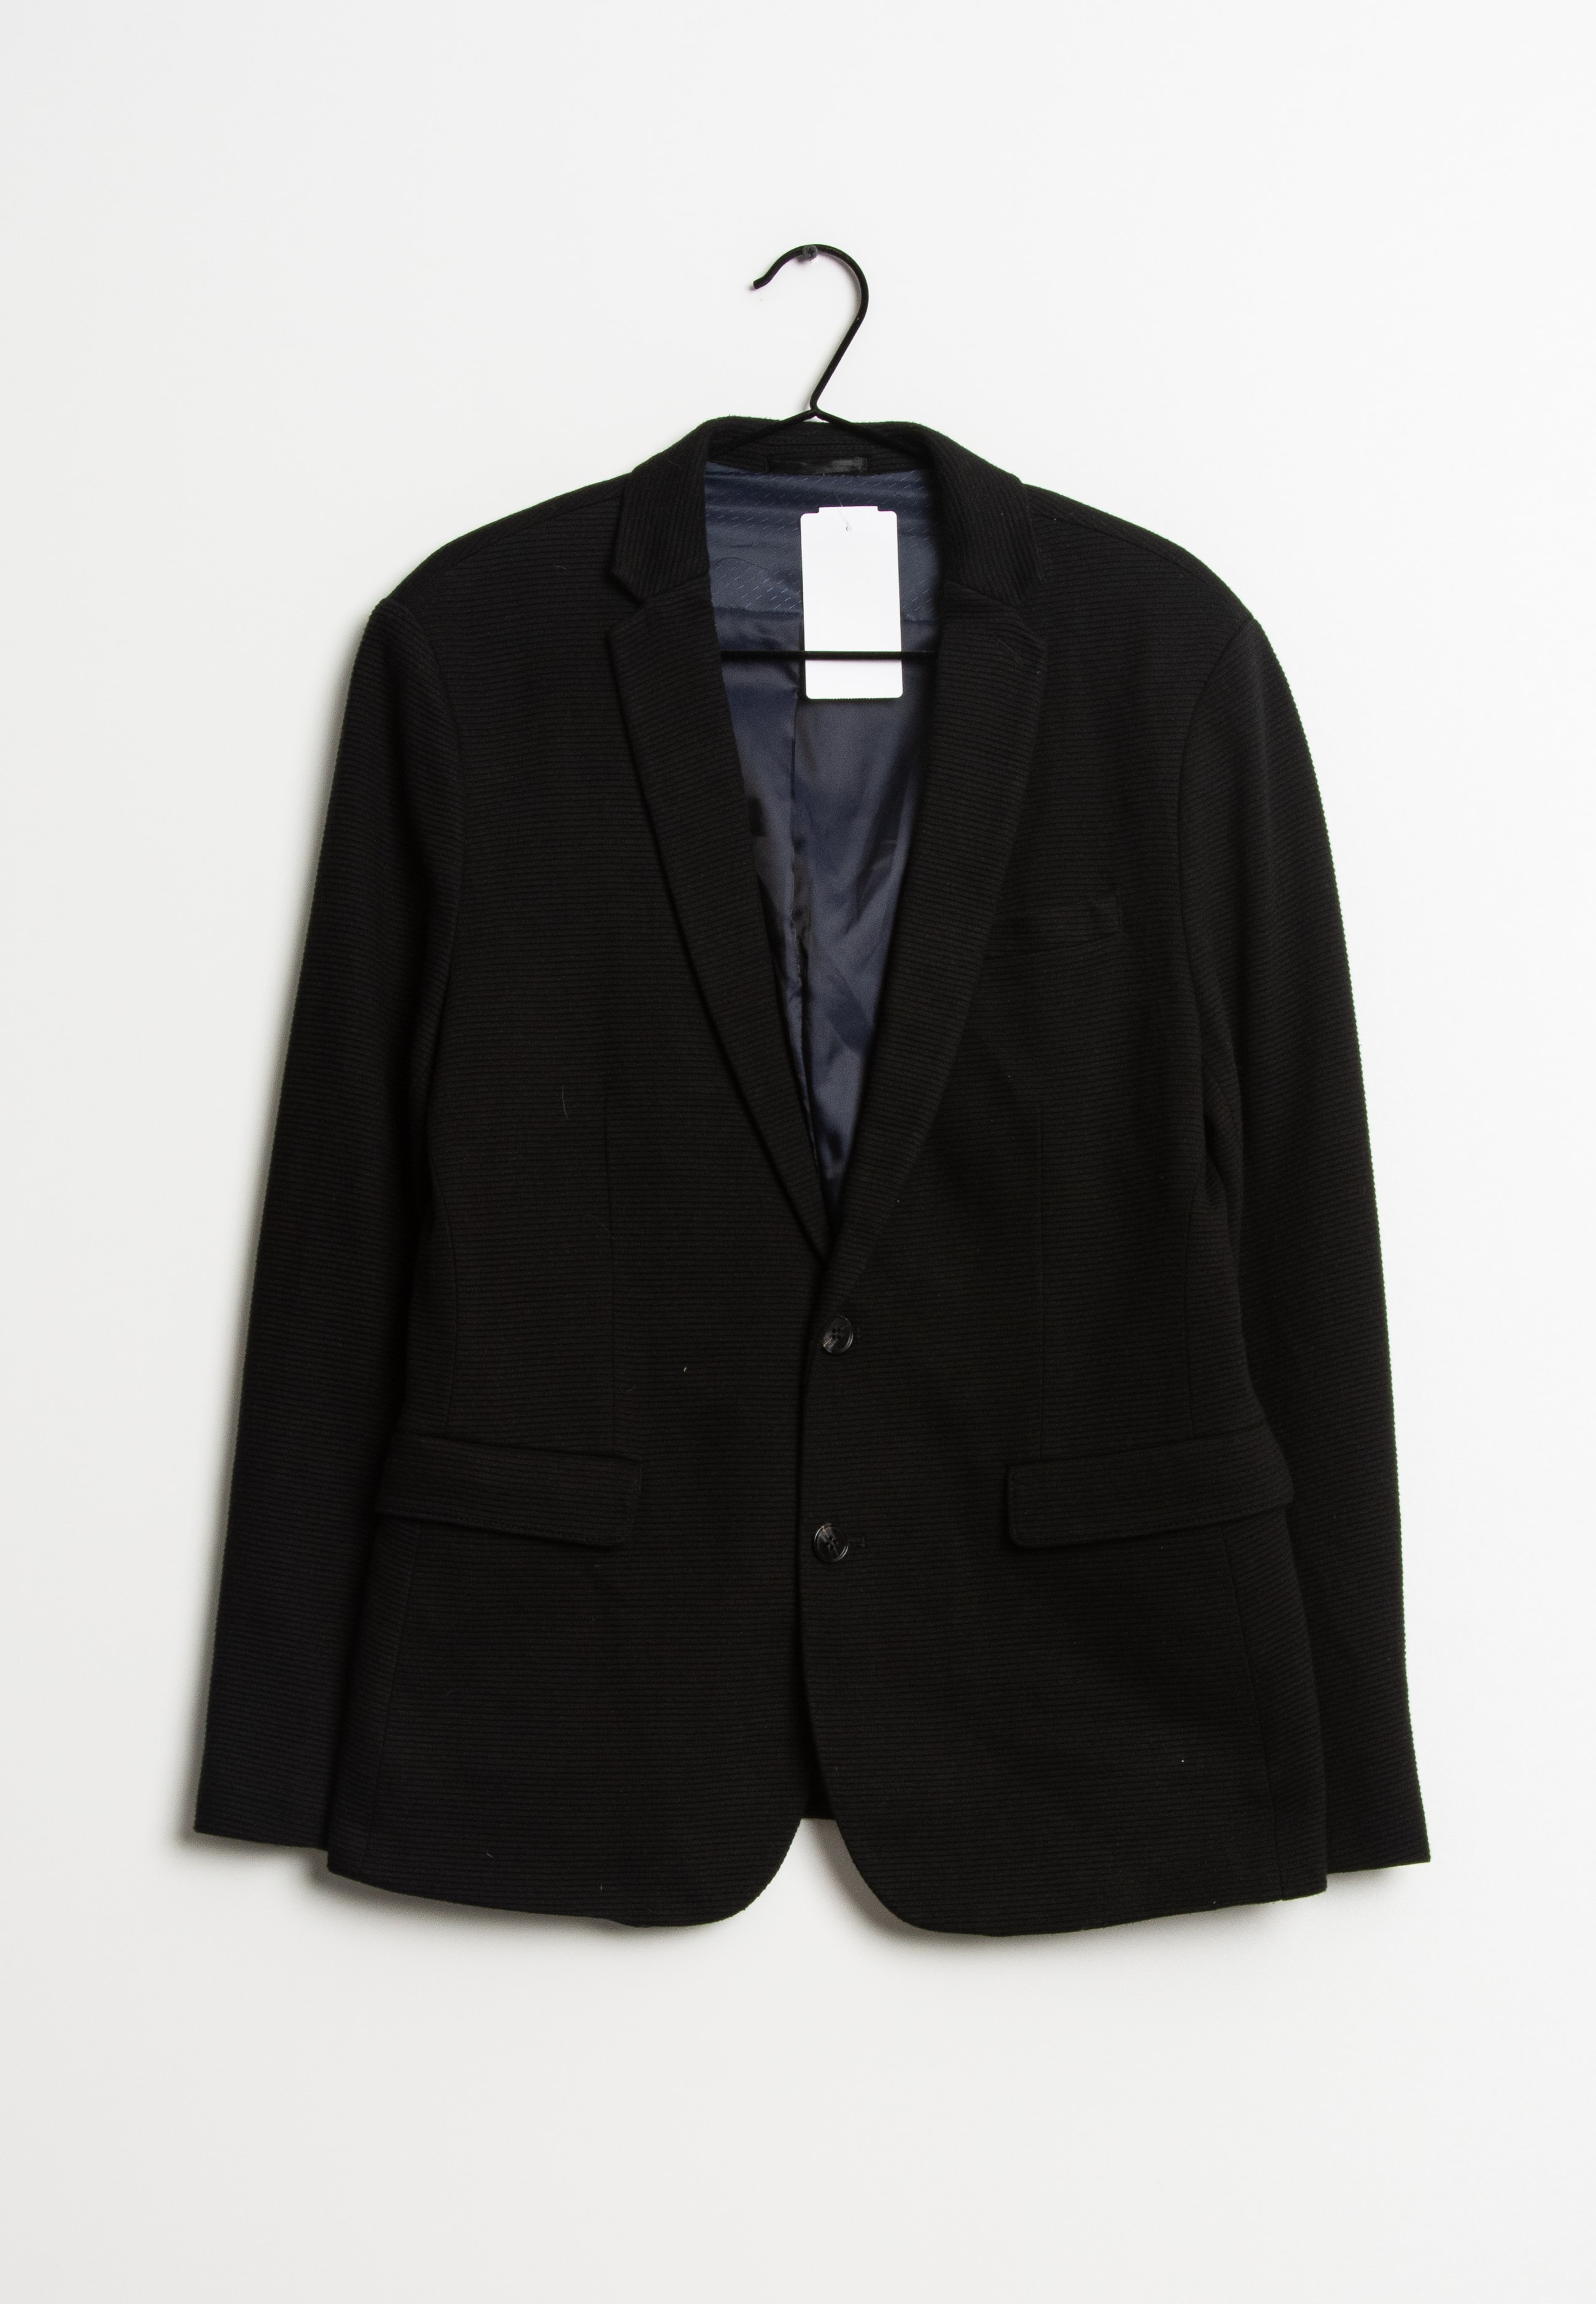 Selected Homme blazer, sort, 50